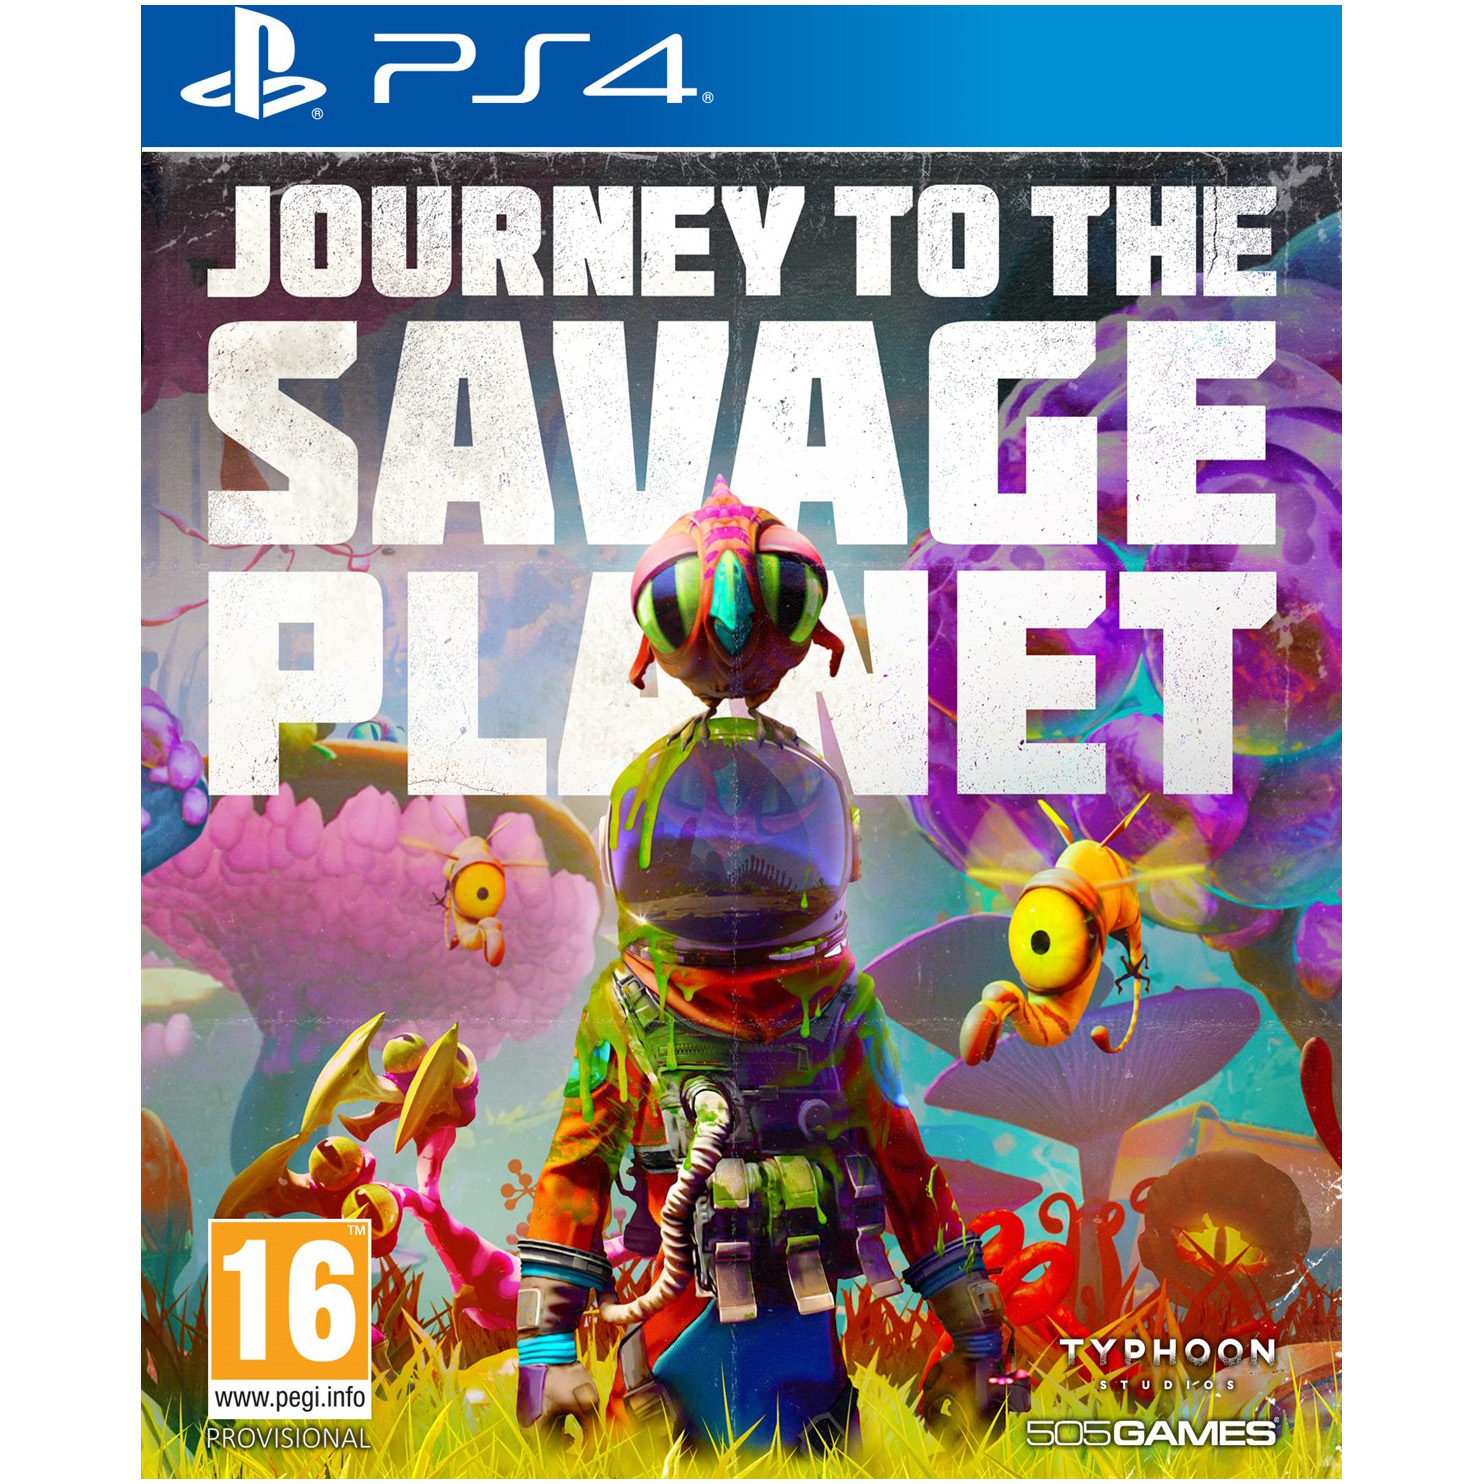 Joc Journey to the Savage Planet pentru Playstation 4 0